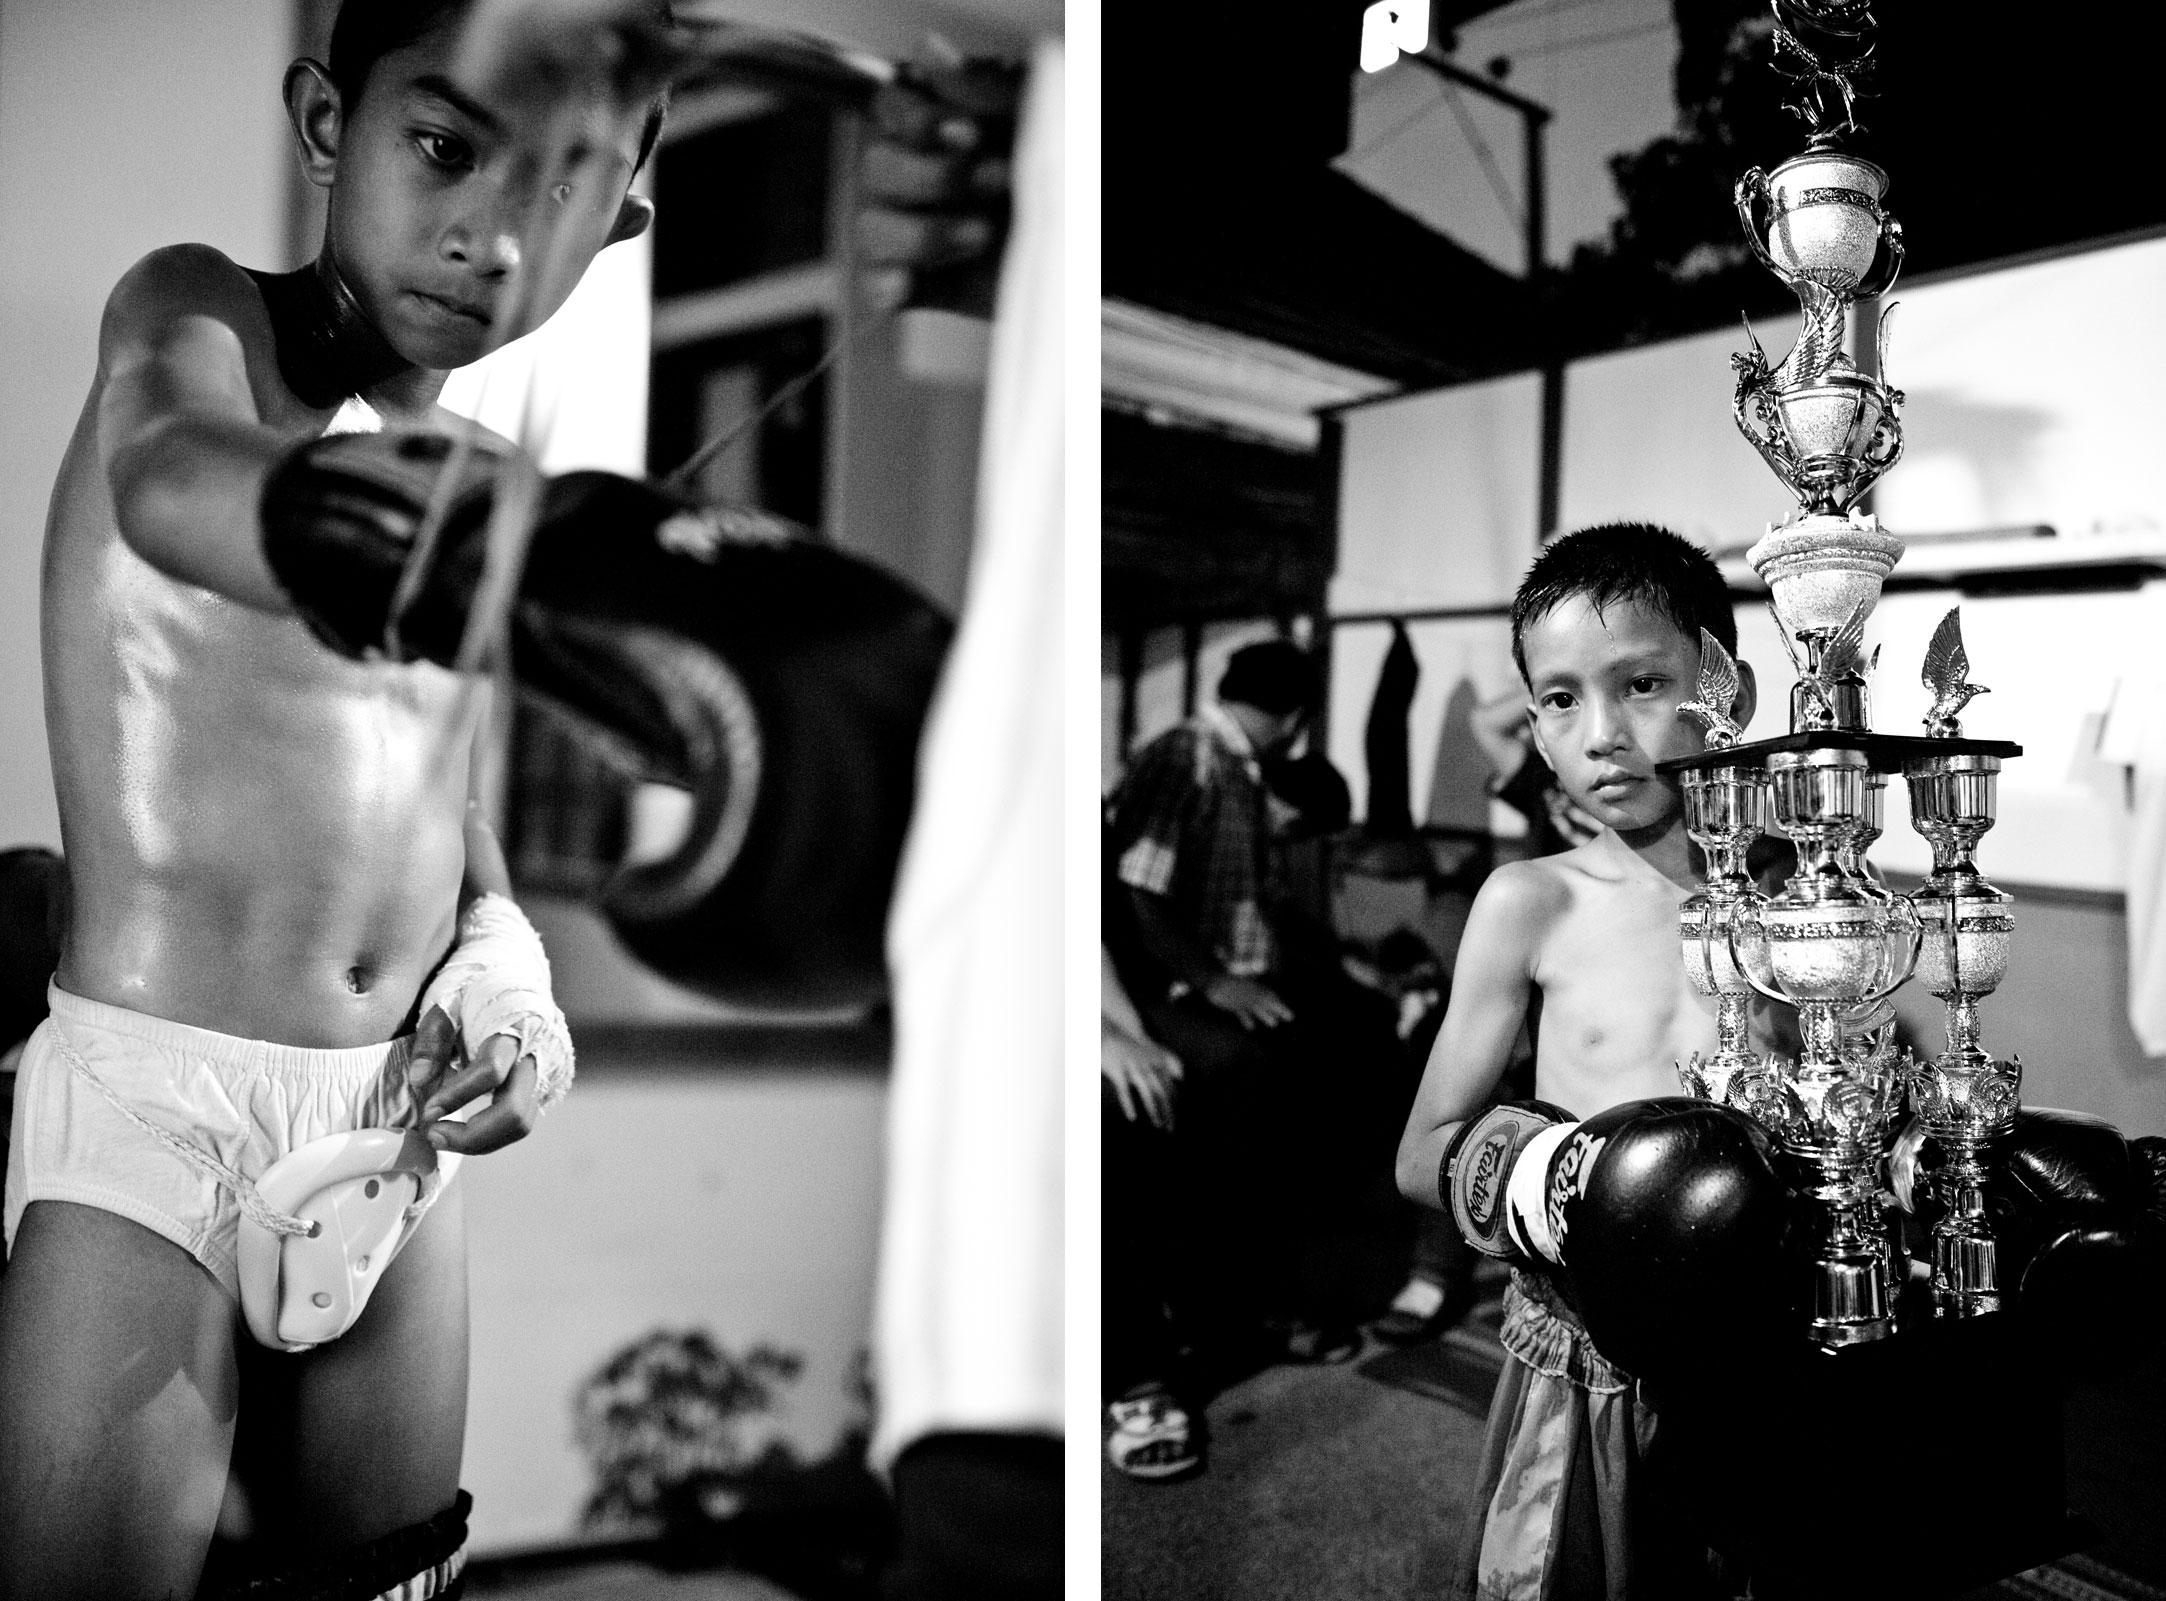 Left: The coach binds a boy the boxing gloves. Right: Tountong with a trophy after he has won the boxing match against Bank.